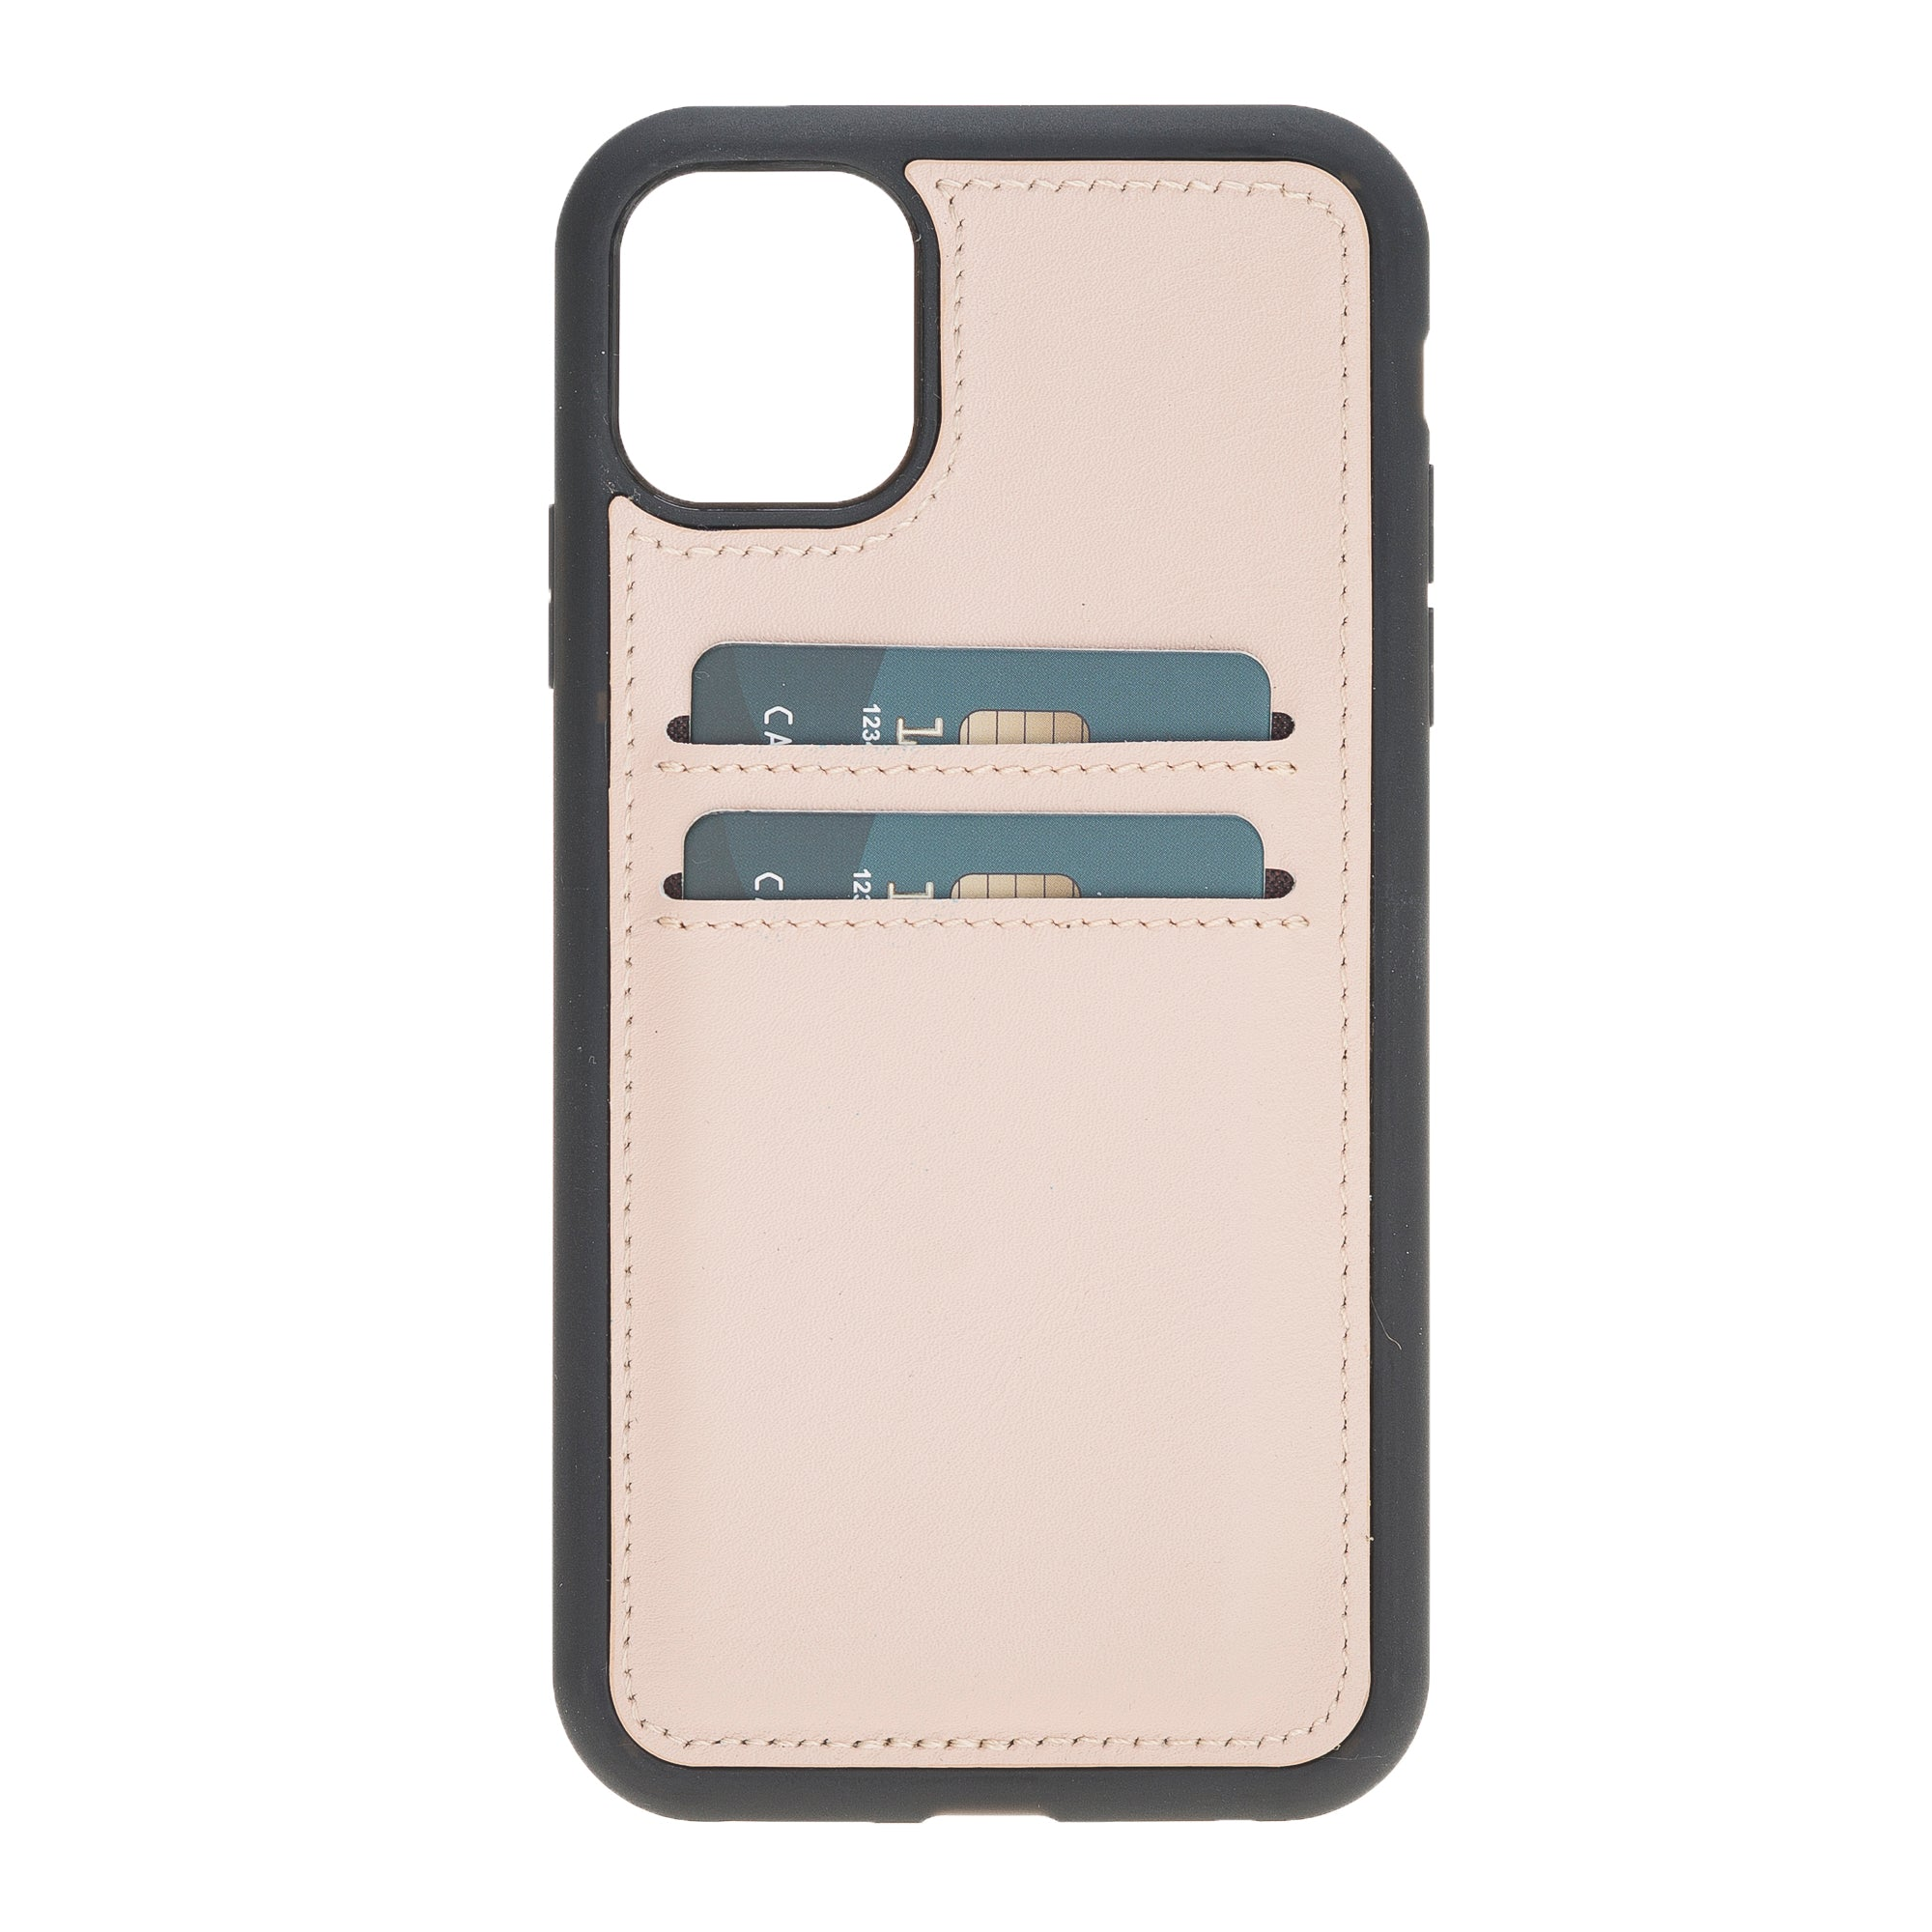 "Nude Beige Apple iPhone 11 (6.1"") Leather Case w/ Card Slots"